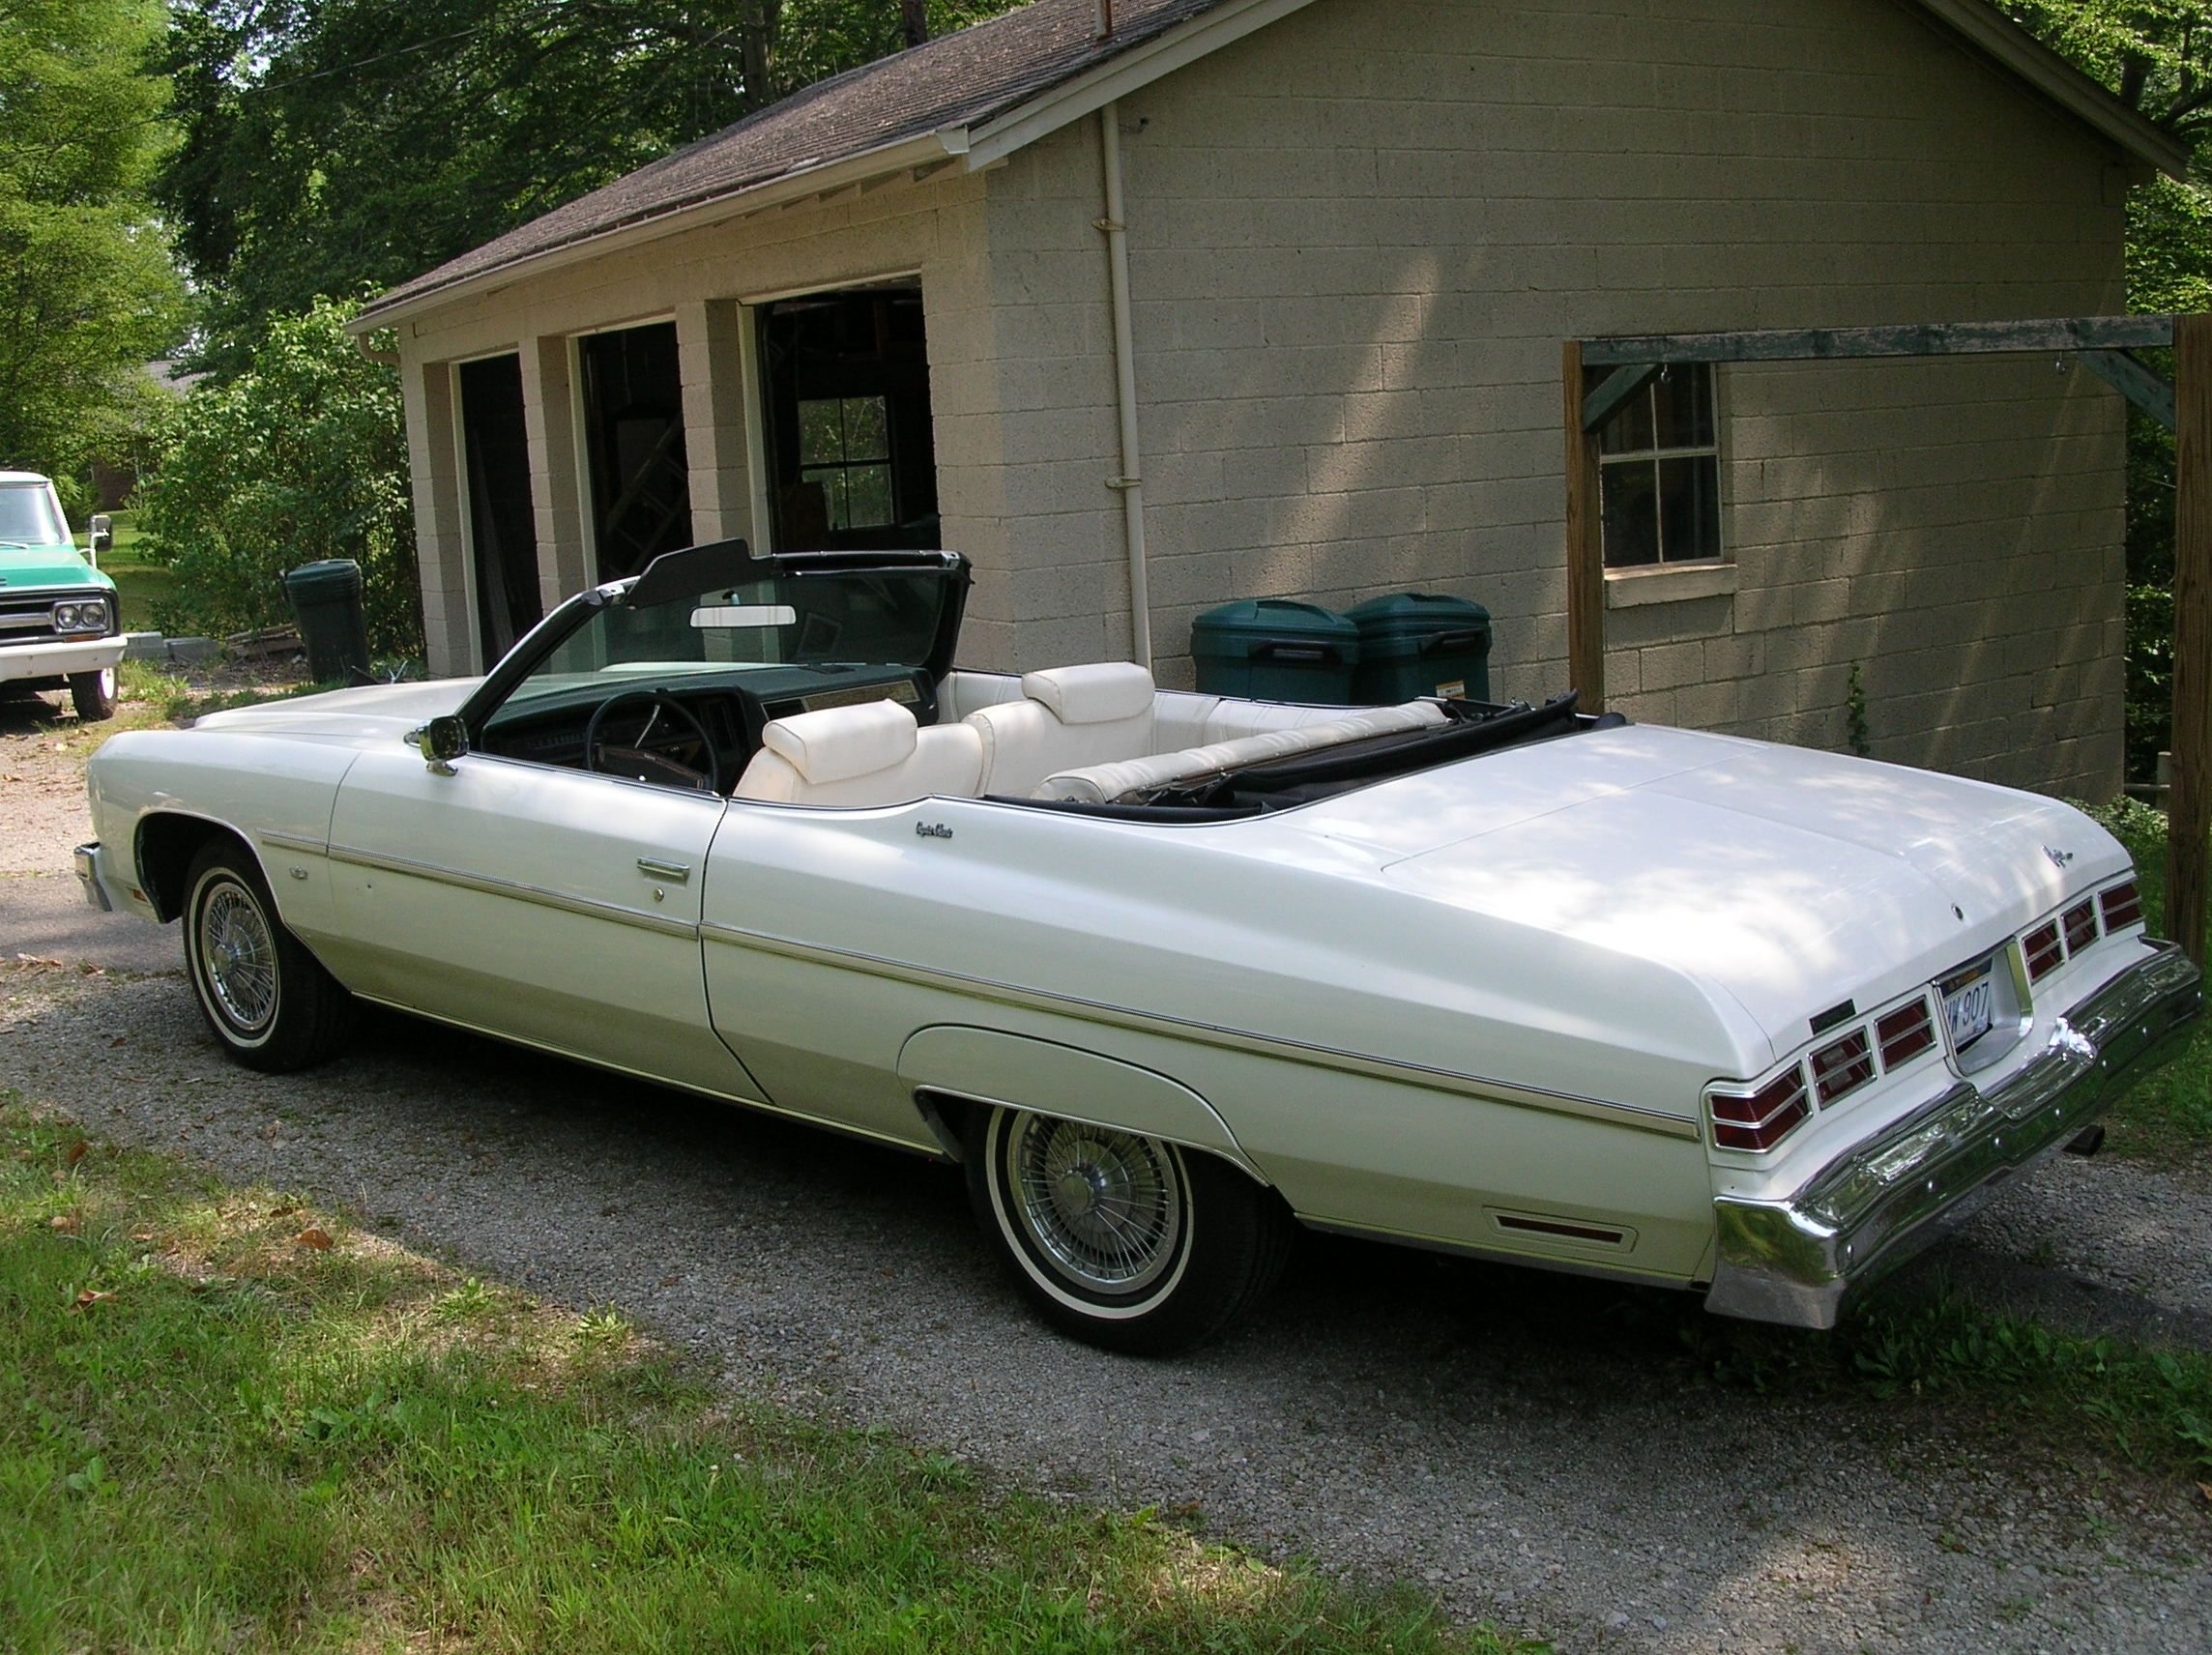 WRG-1056] 1973 Impala Convertible For Sale Craigslist